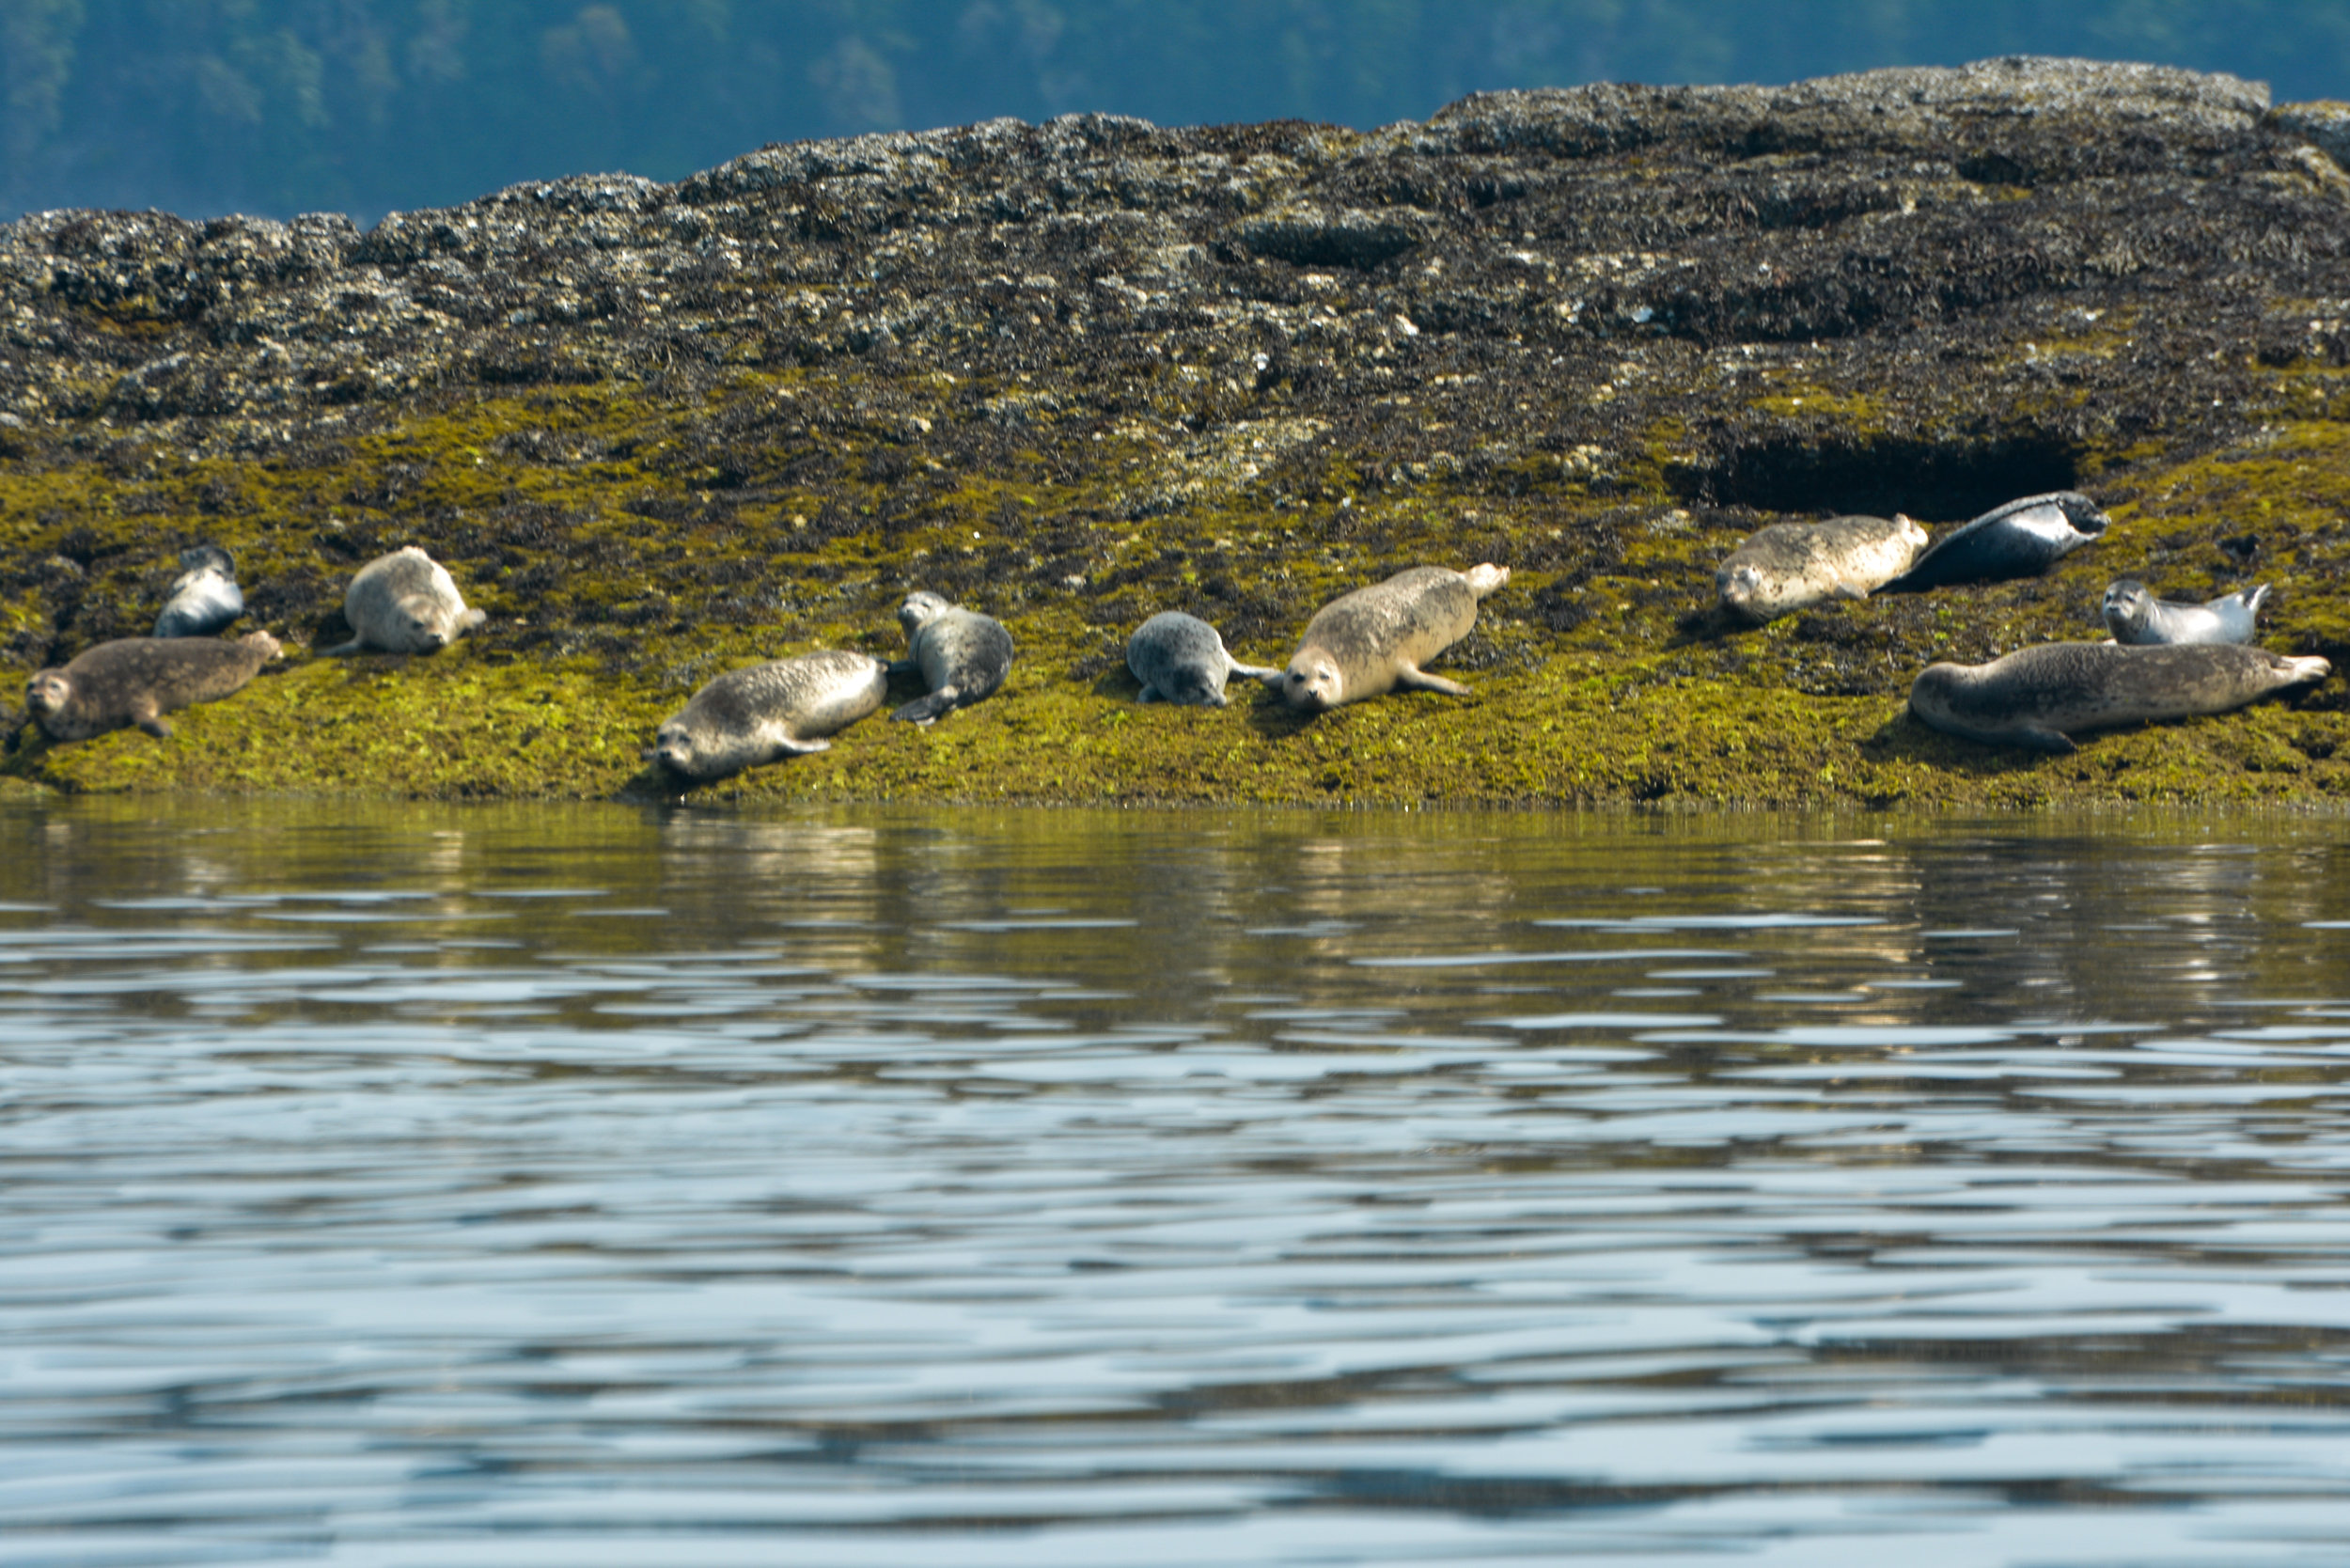 Harbour seals hauled out on the rocks covered in algae. Photo by Rodrigo Menezes.